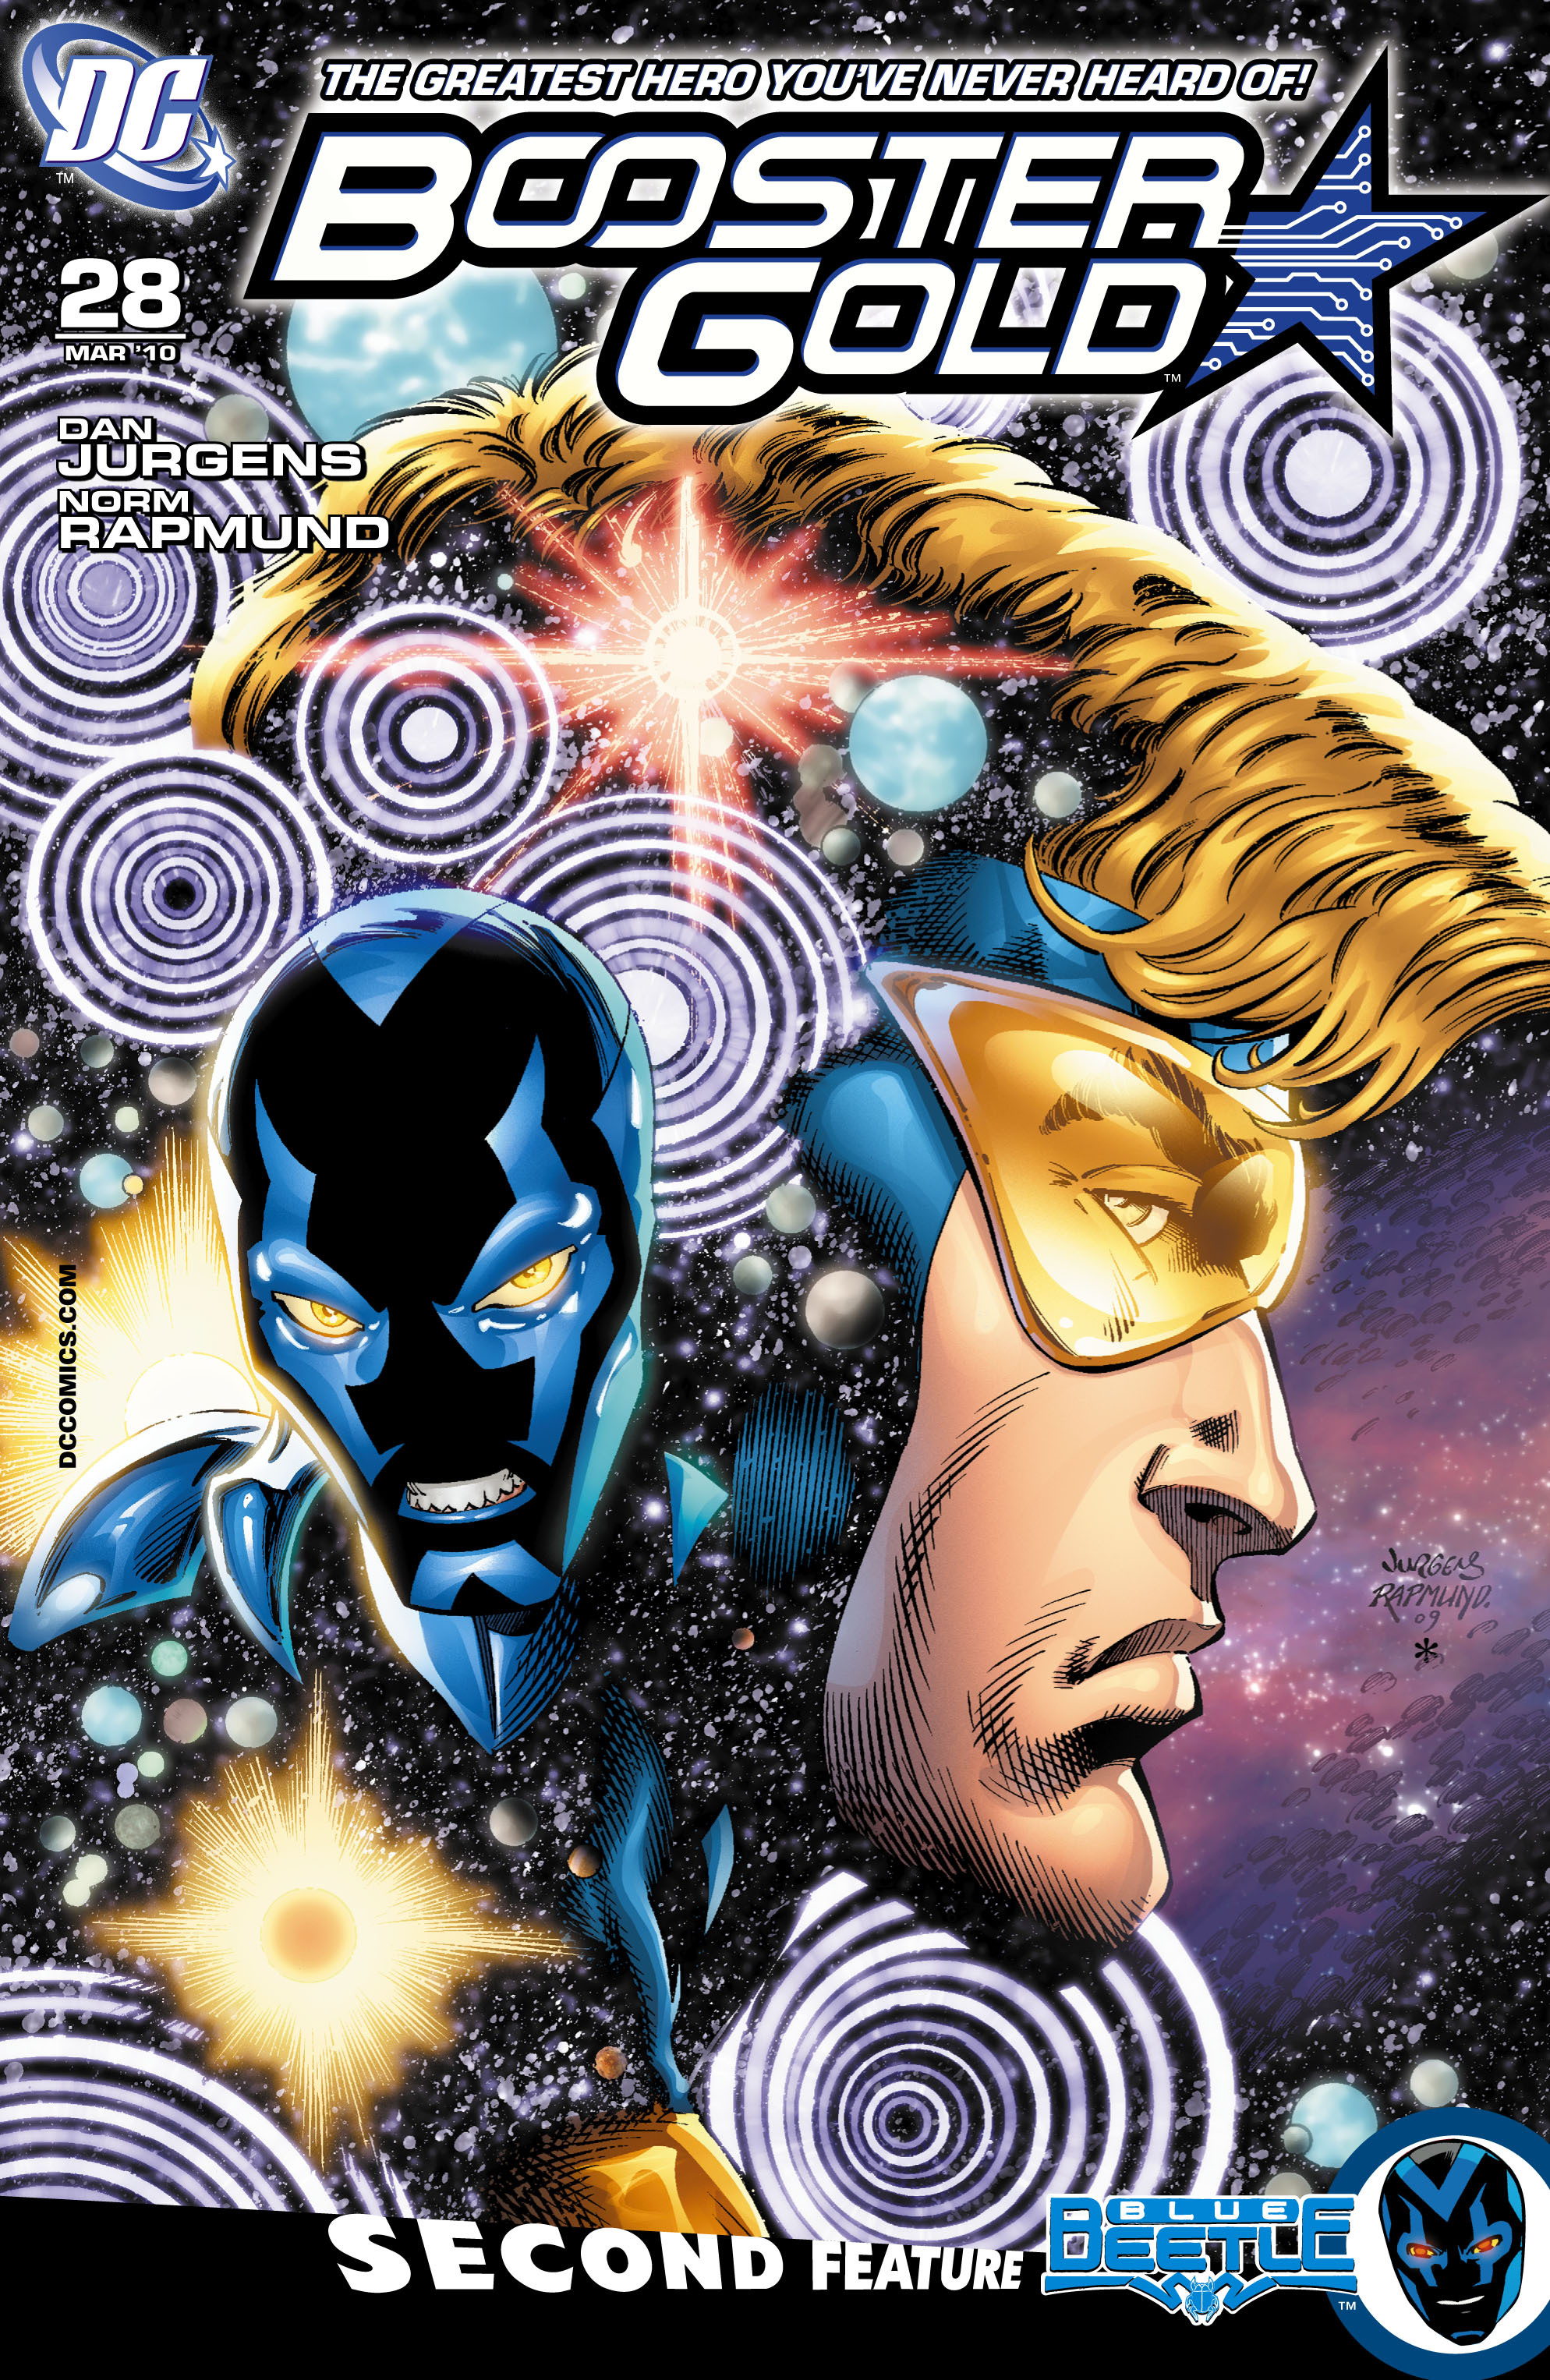 Booster Gold 2007 Issue 28